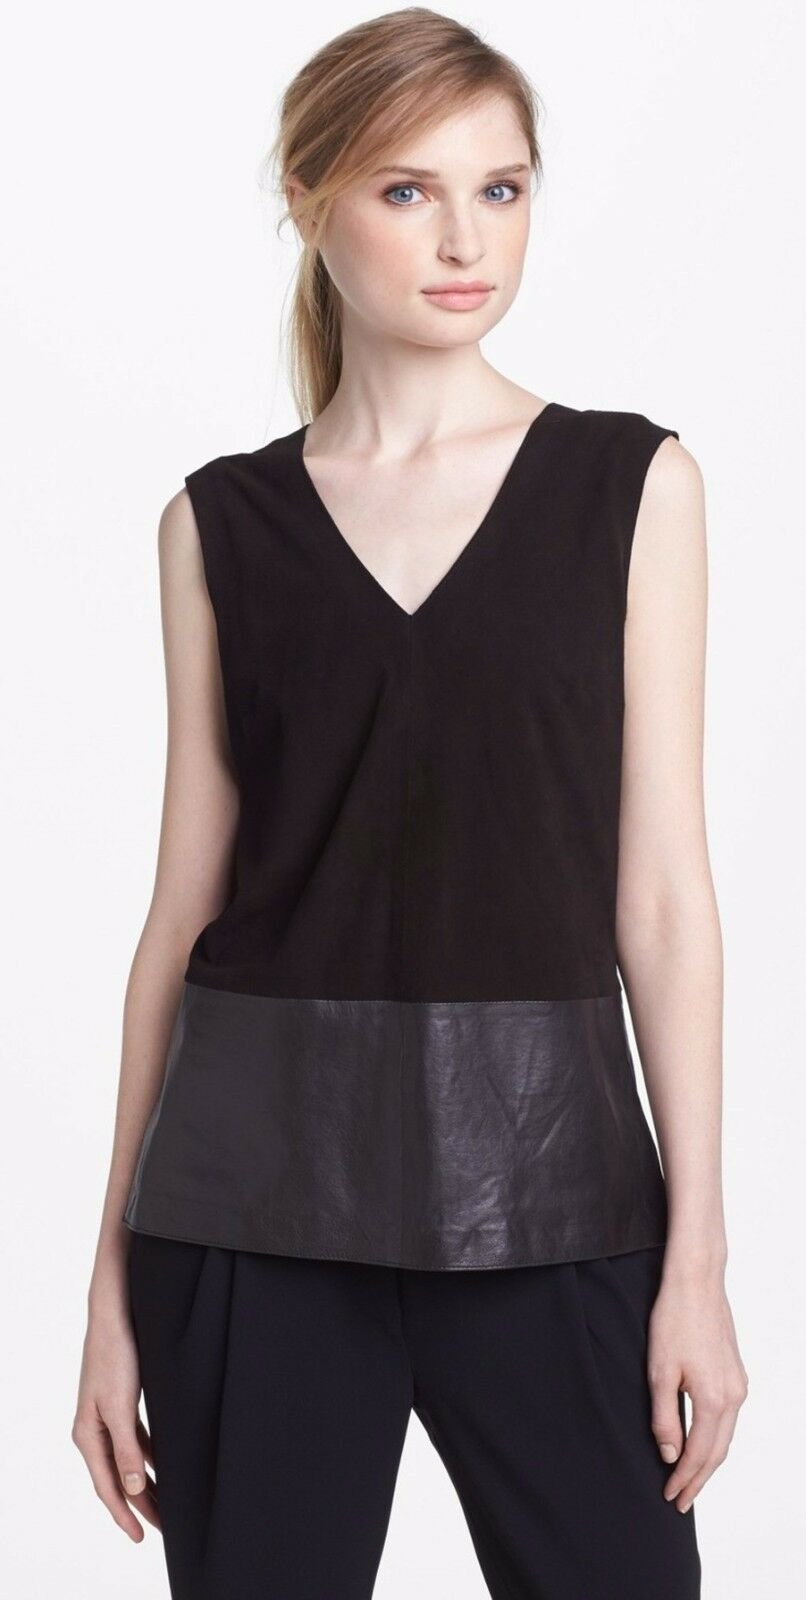 Vince Suede & Leather Hi-Low Sleeveless Slit Sides Tank Top schwarz 12 Nwt